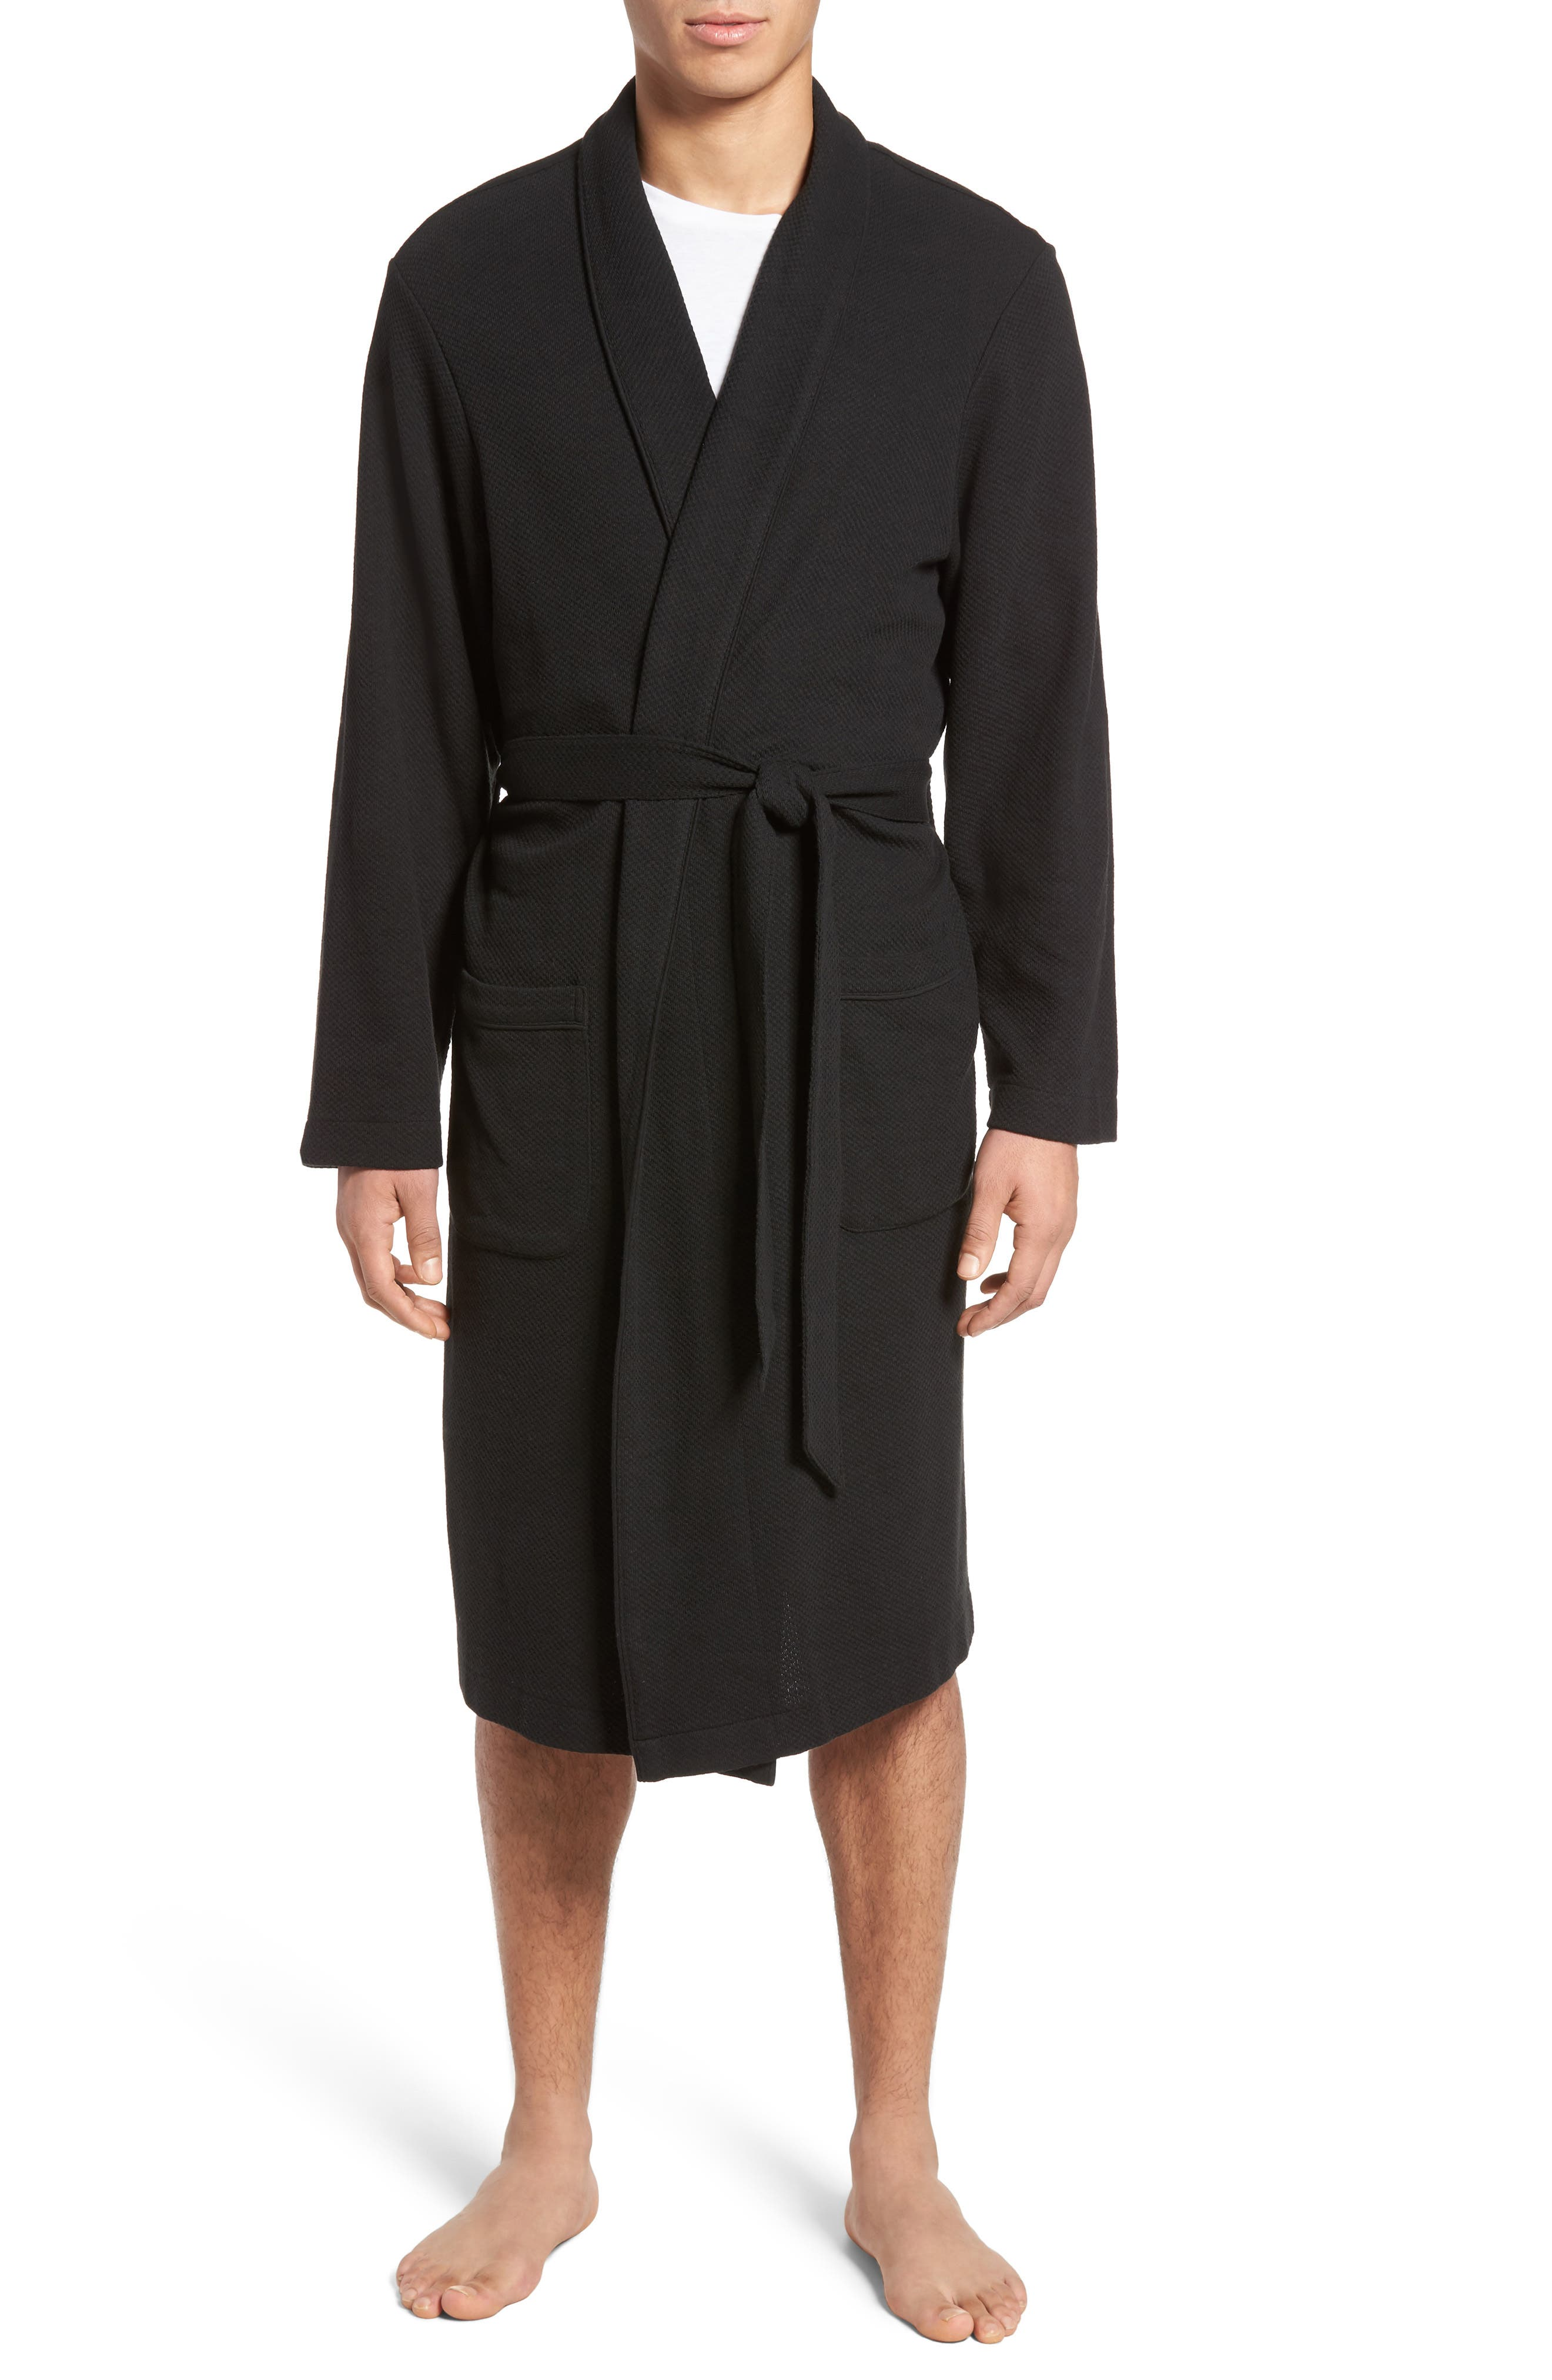 NORDSTROM MENS SHOP Thermal Robe